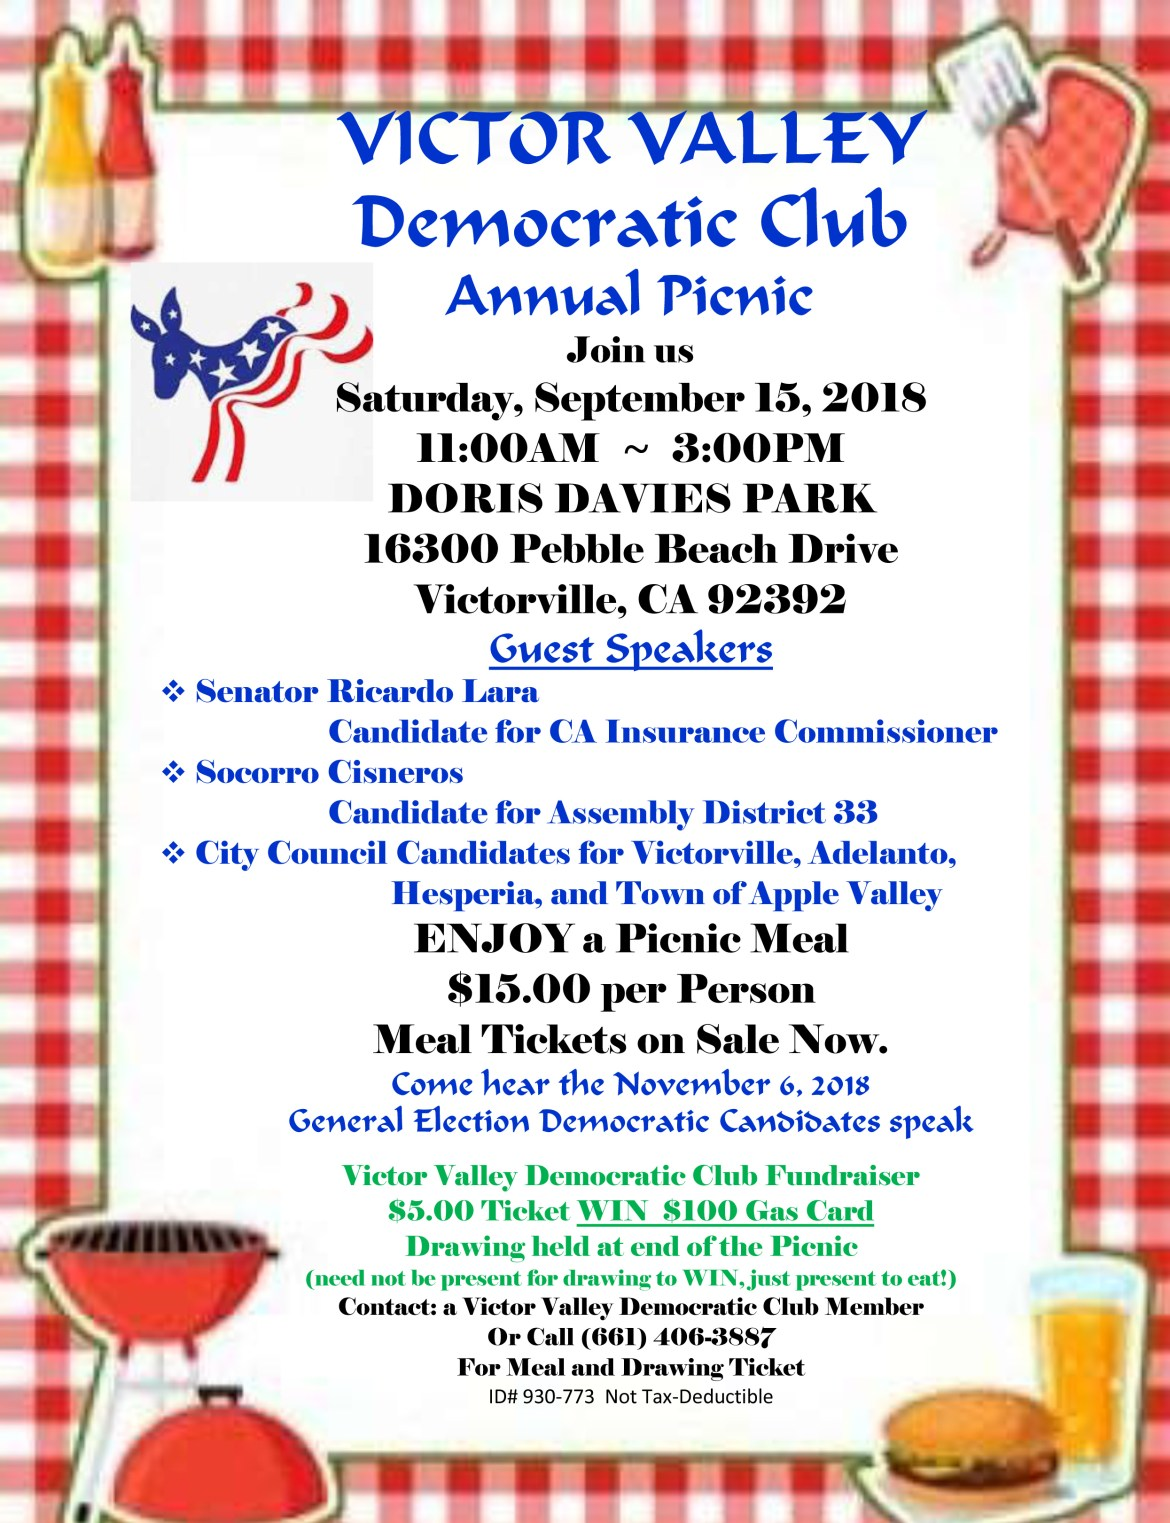 Picnic 9-15-18 VICTOR VALLEY DEM CLUB